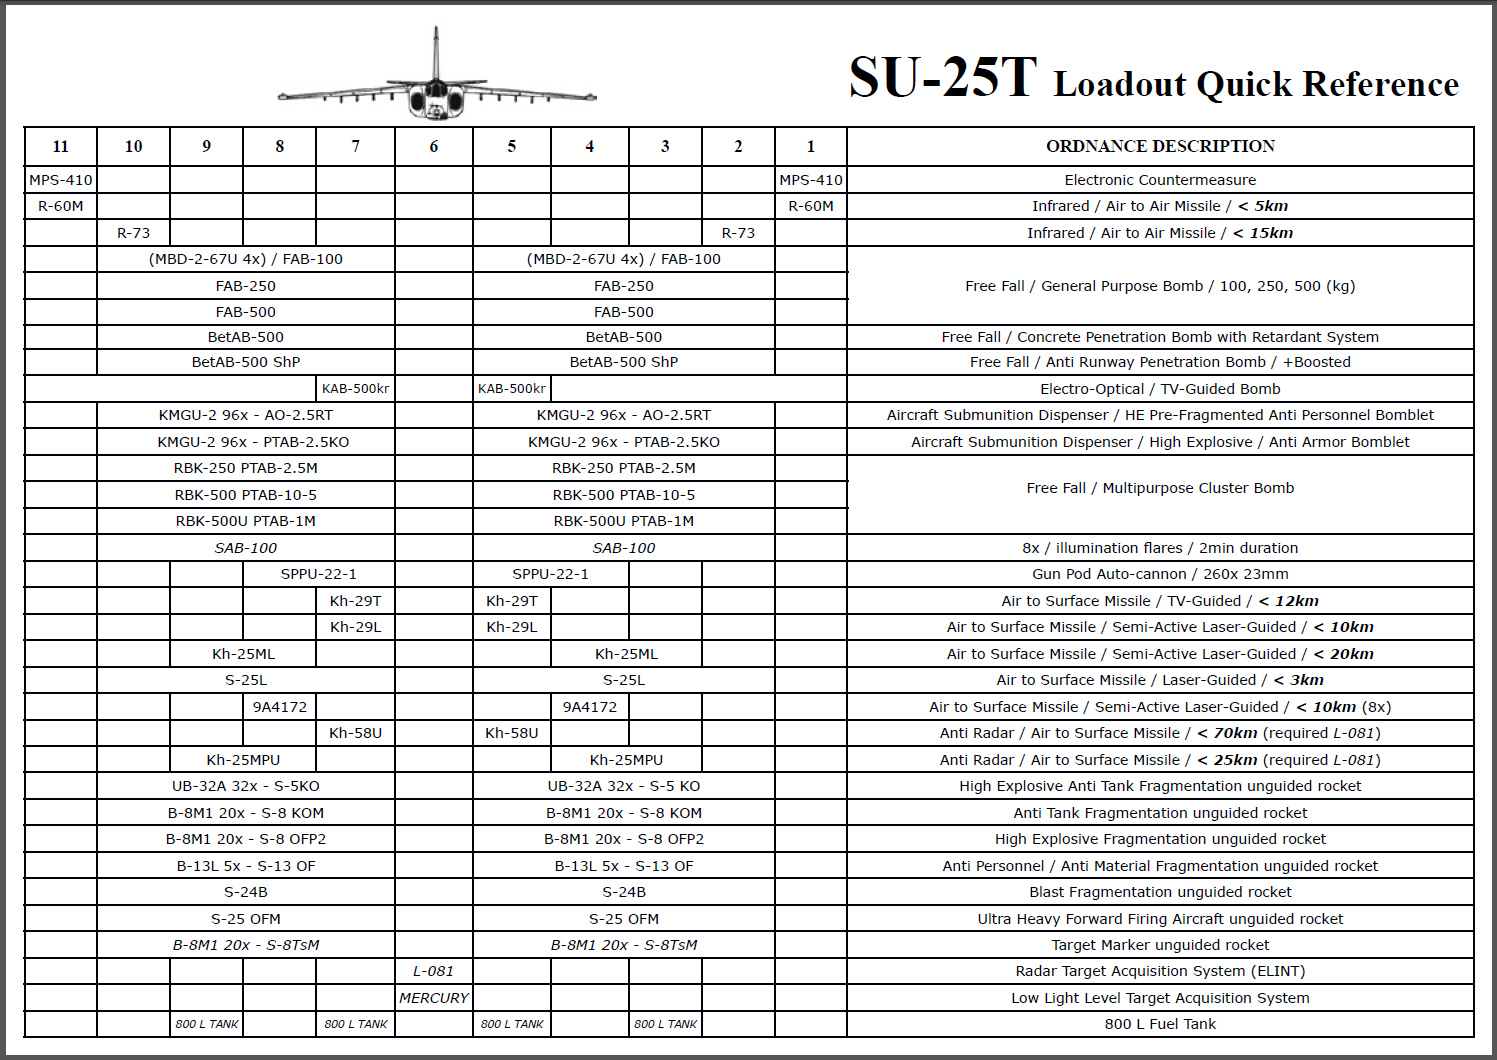 SU-25T Loadout Quick Reference